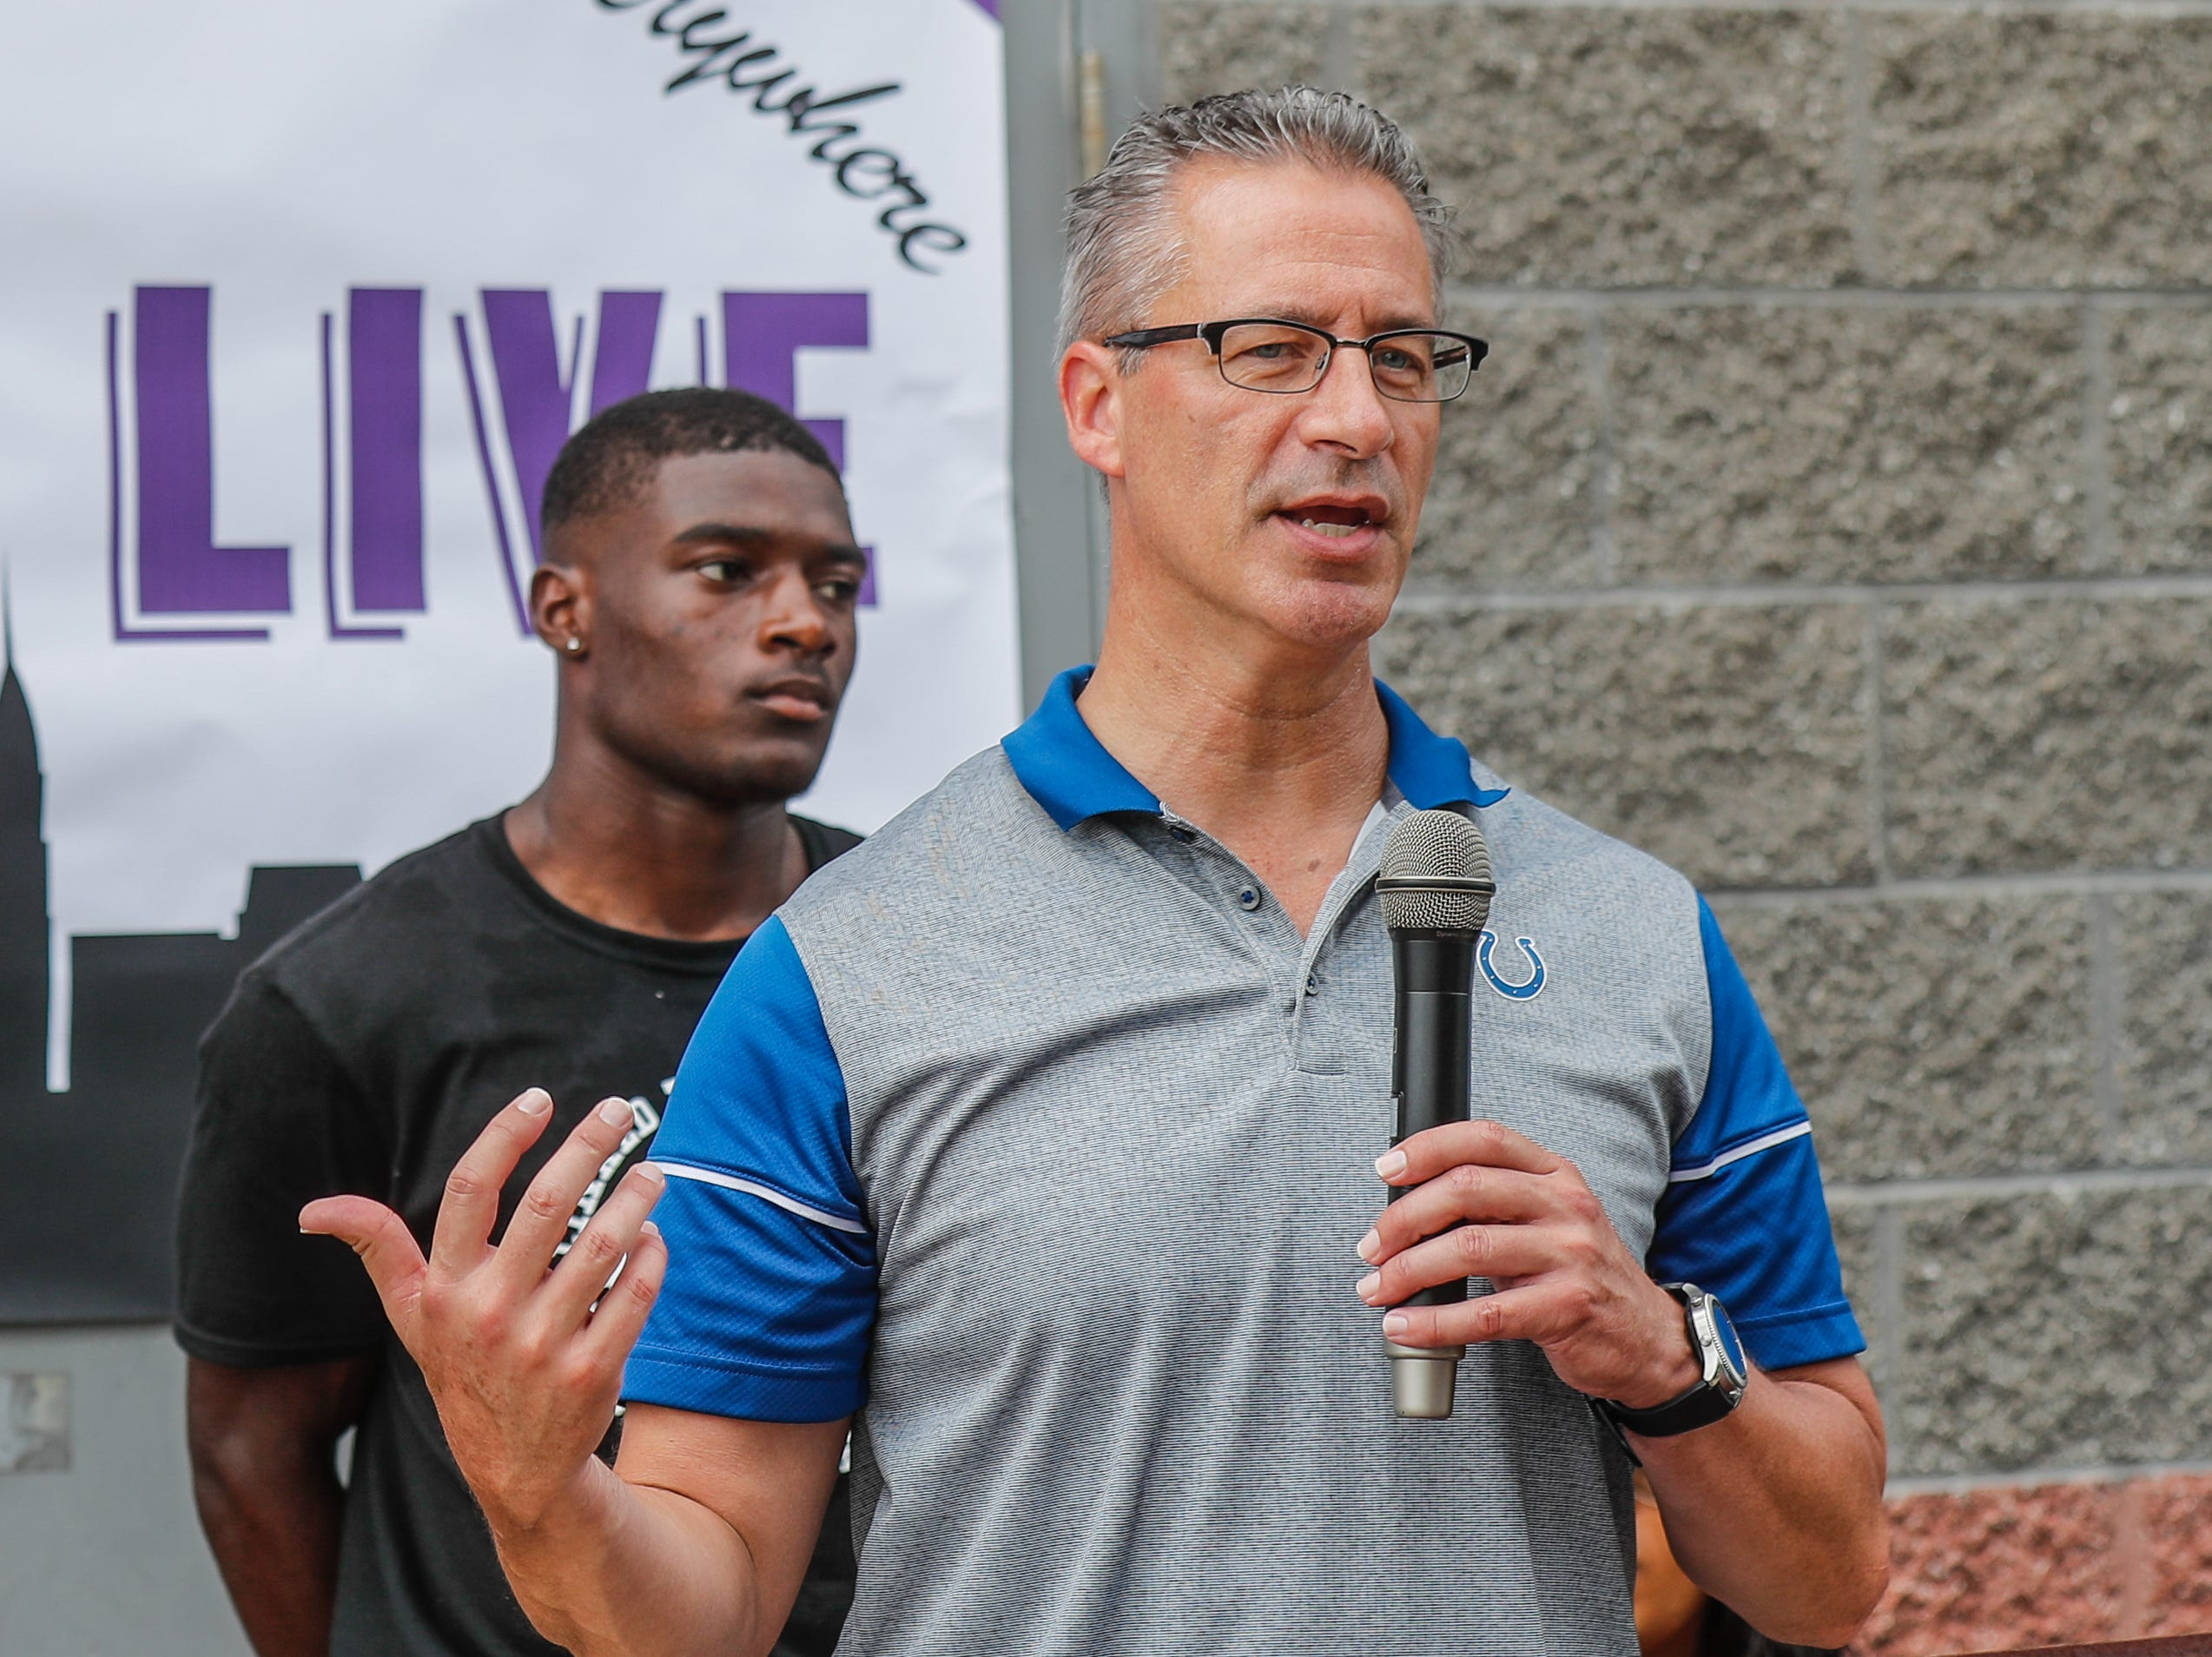 Bryan Roach, Police Chief of the Indianapolis Metropolitan Police Department, speaks during the second annual 'We Live' Peace Walk and Community Day to end youth violence at Washington Park on Saturday, Aug. 11, 2018. 'We Live,' which stands for 'Linked To Intercept Violence' was started by students from Warren Central High School in Indianapolis.